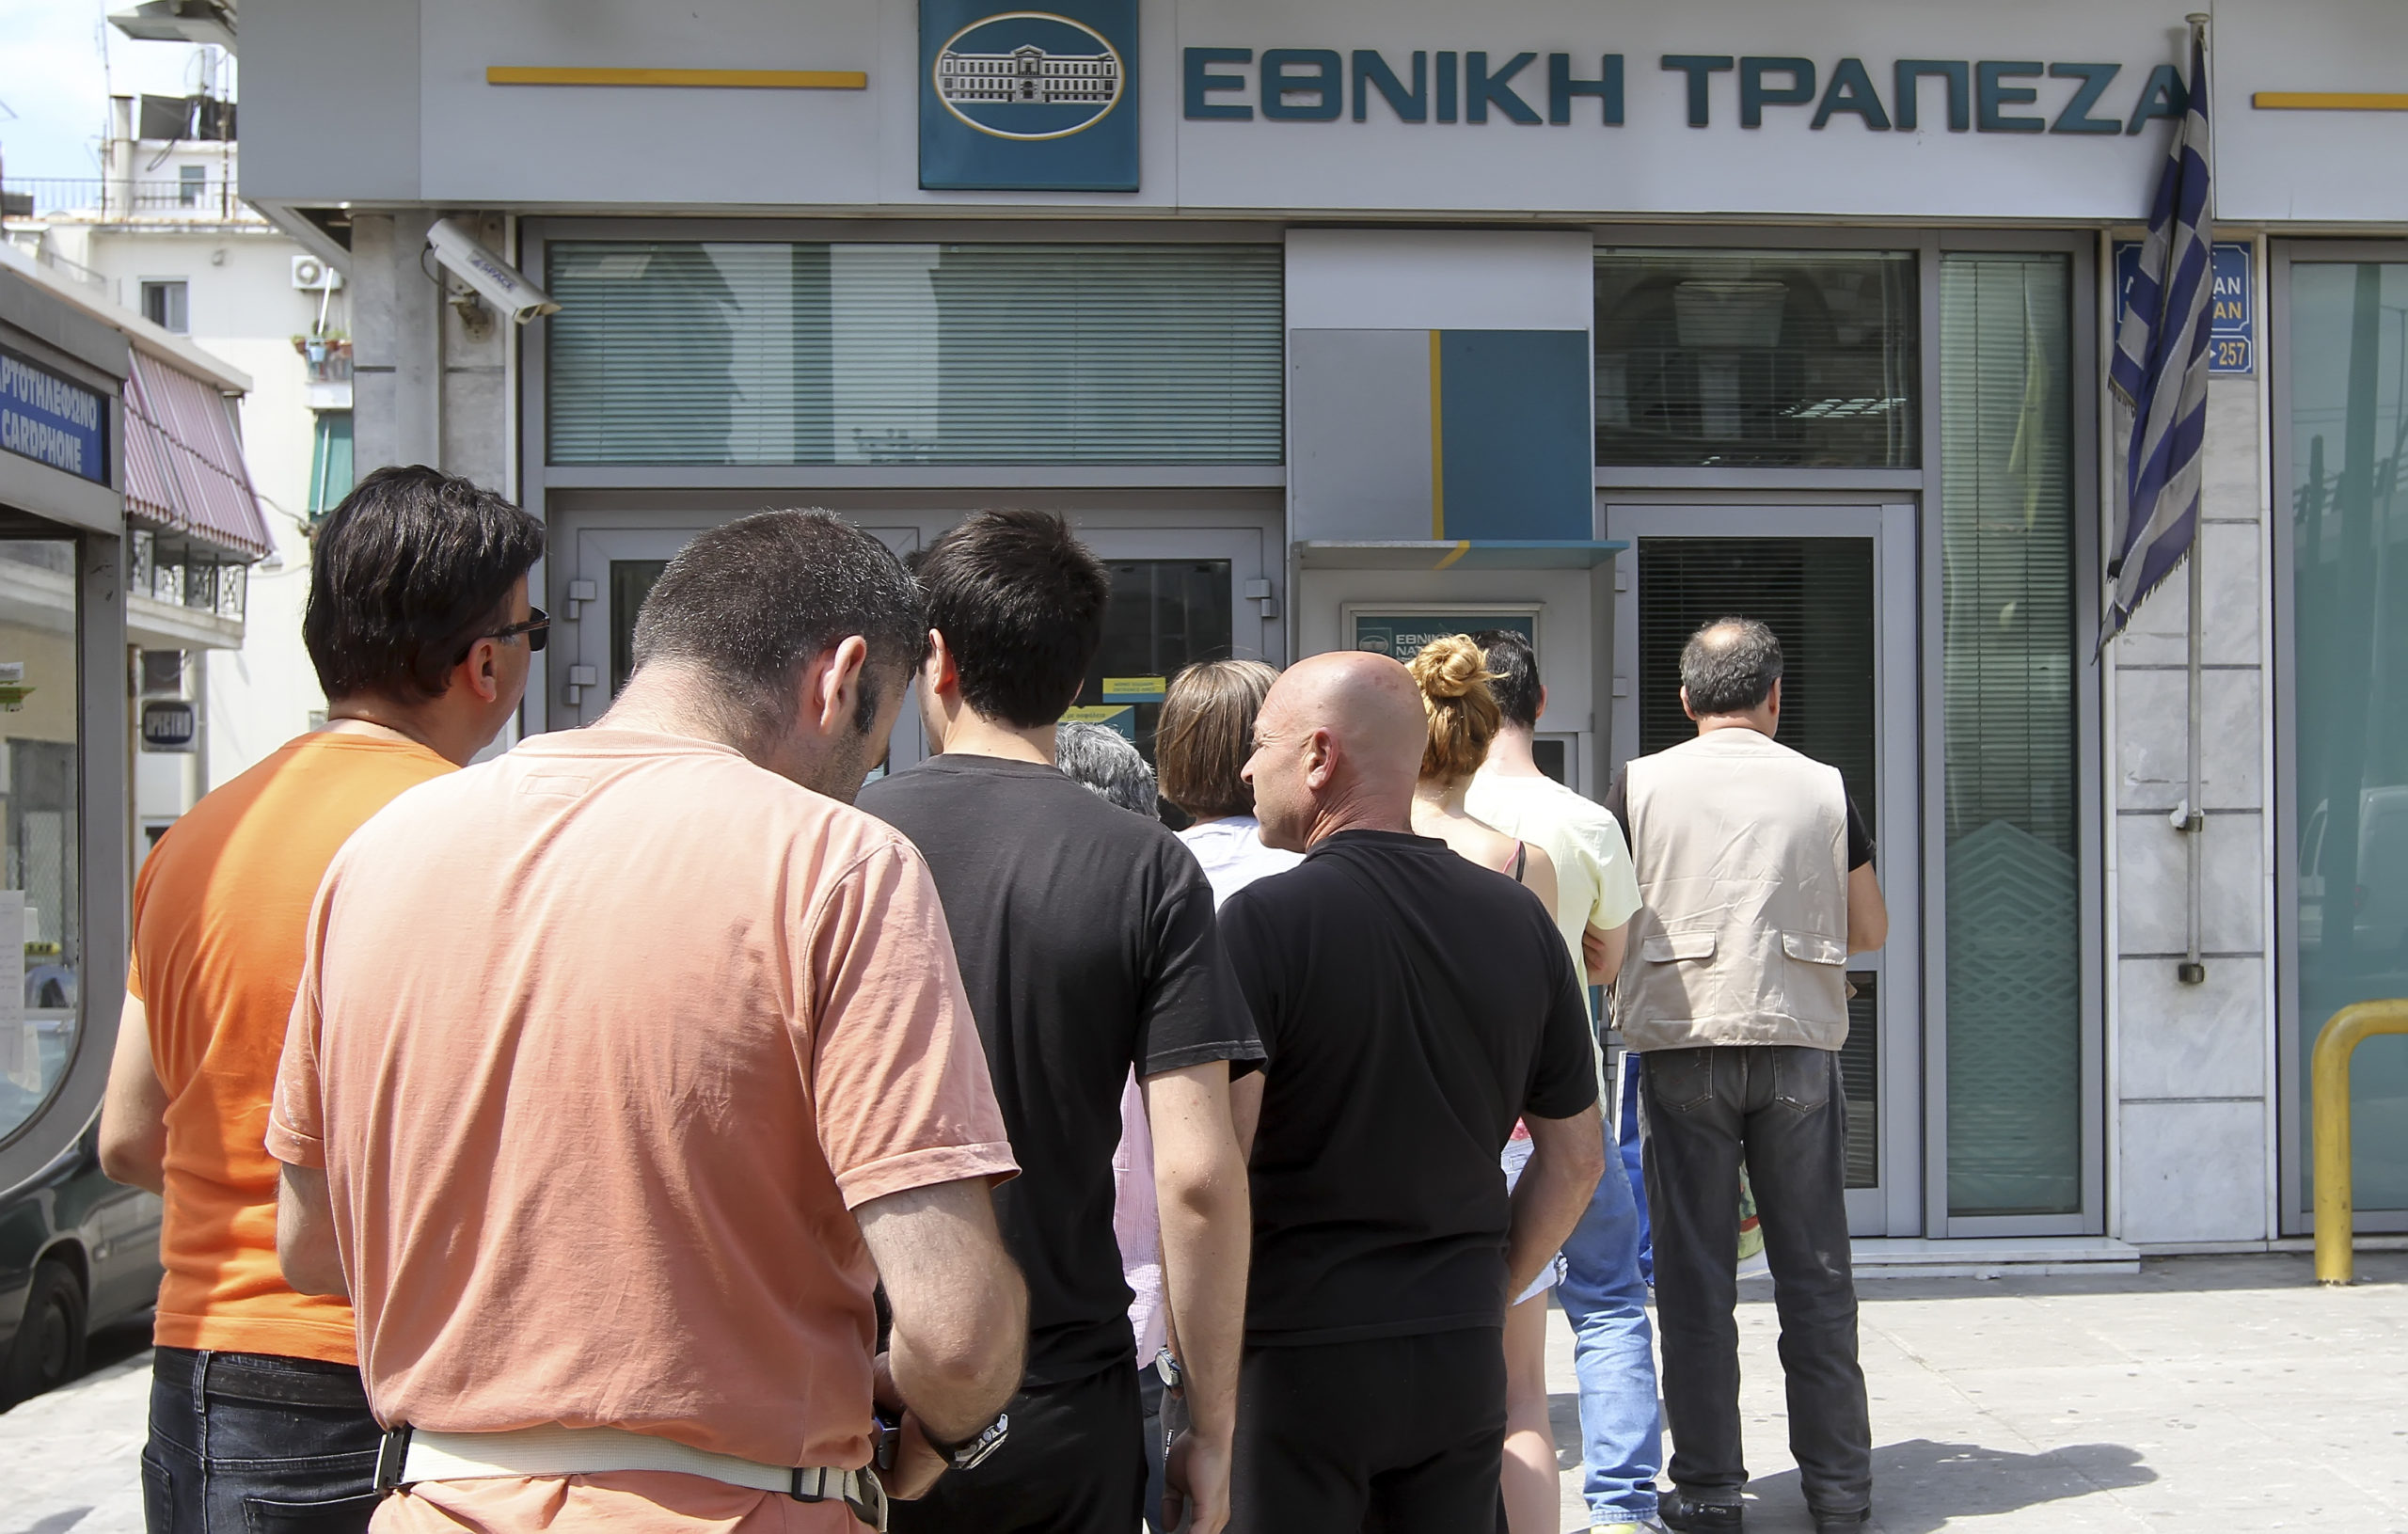 Everyday economics and Temporarily closing Greek banks means the loss of financial intermediaries that pump money around the economy.